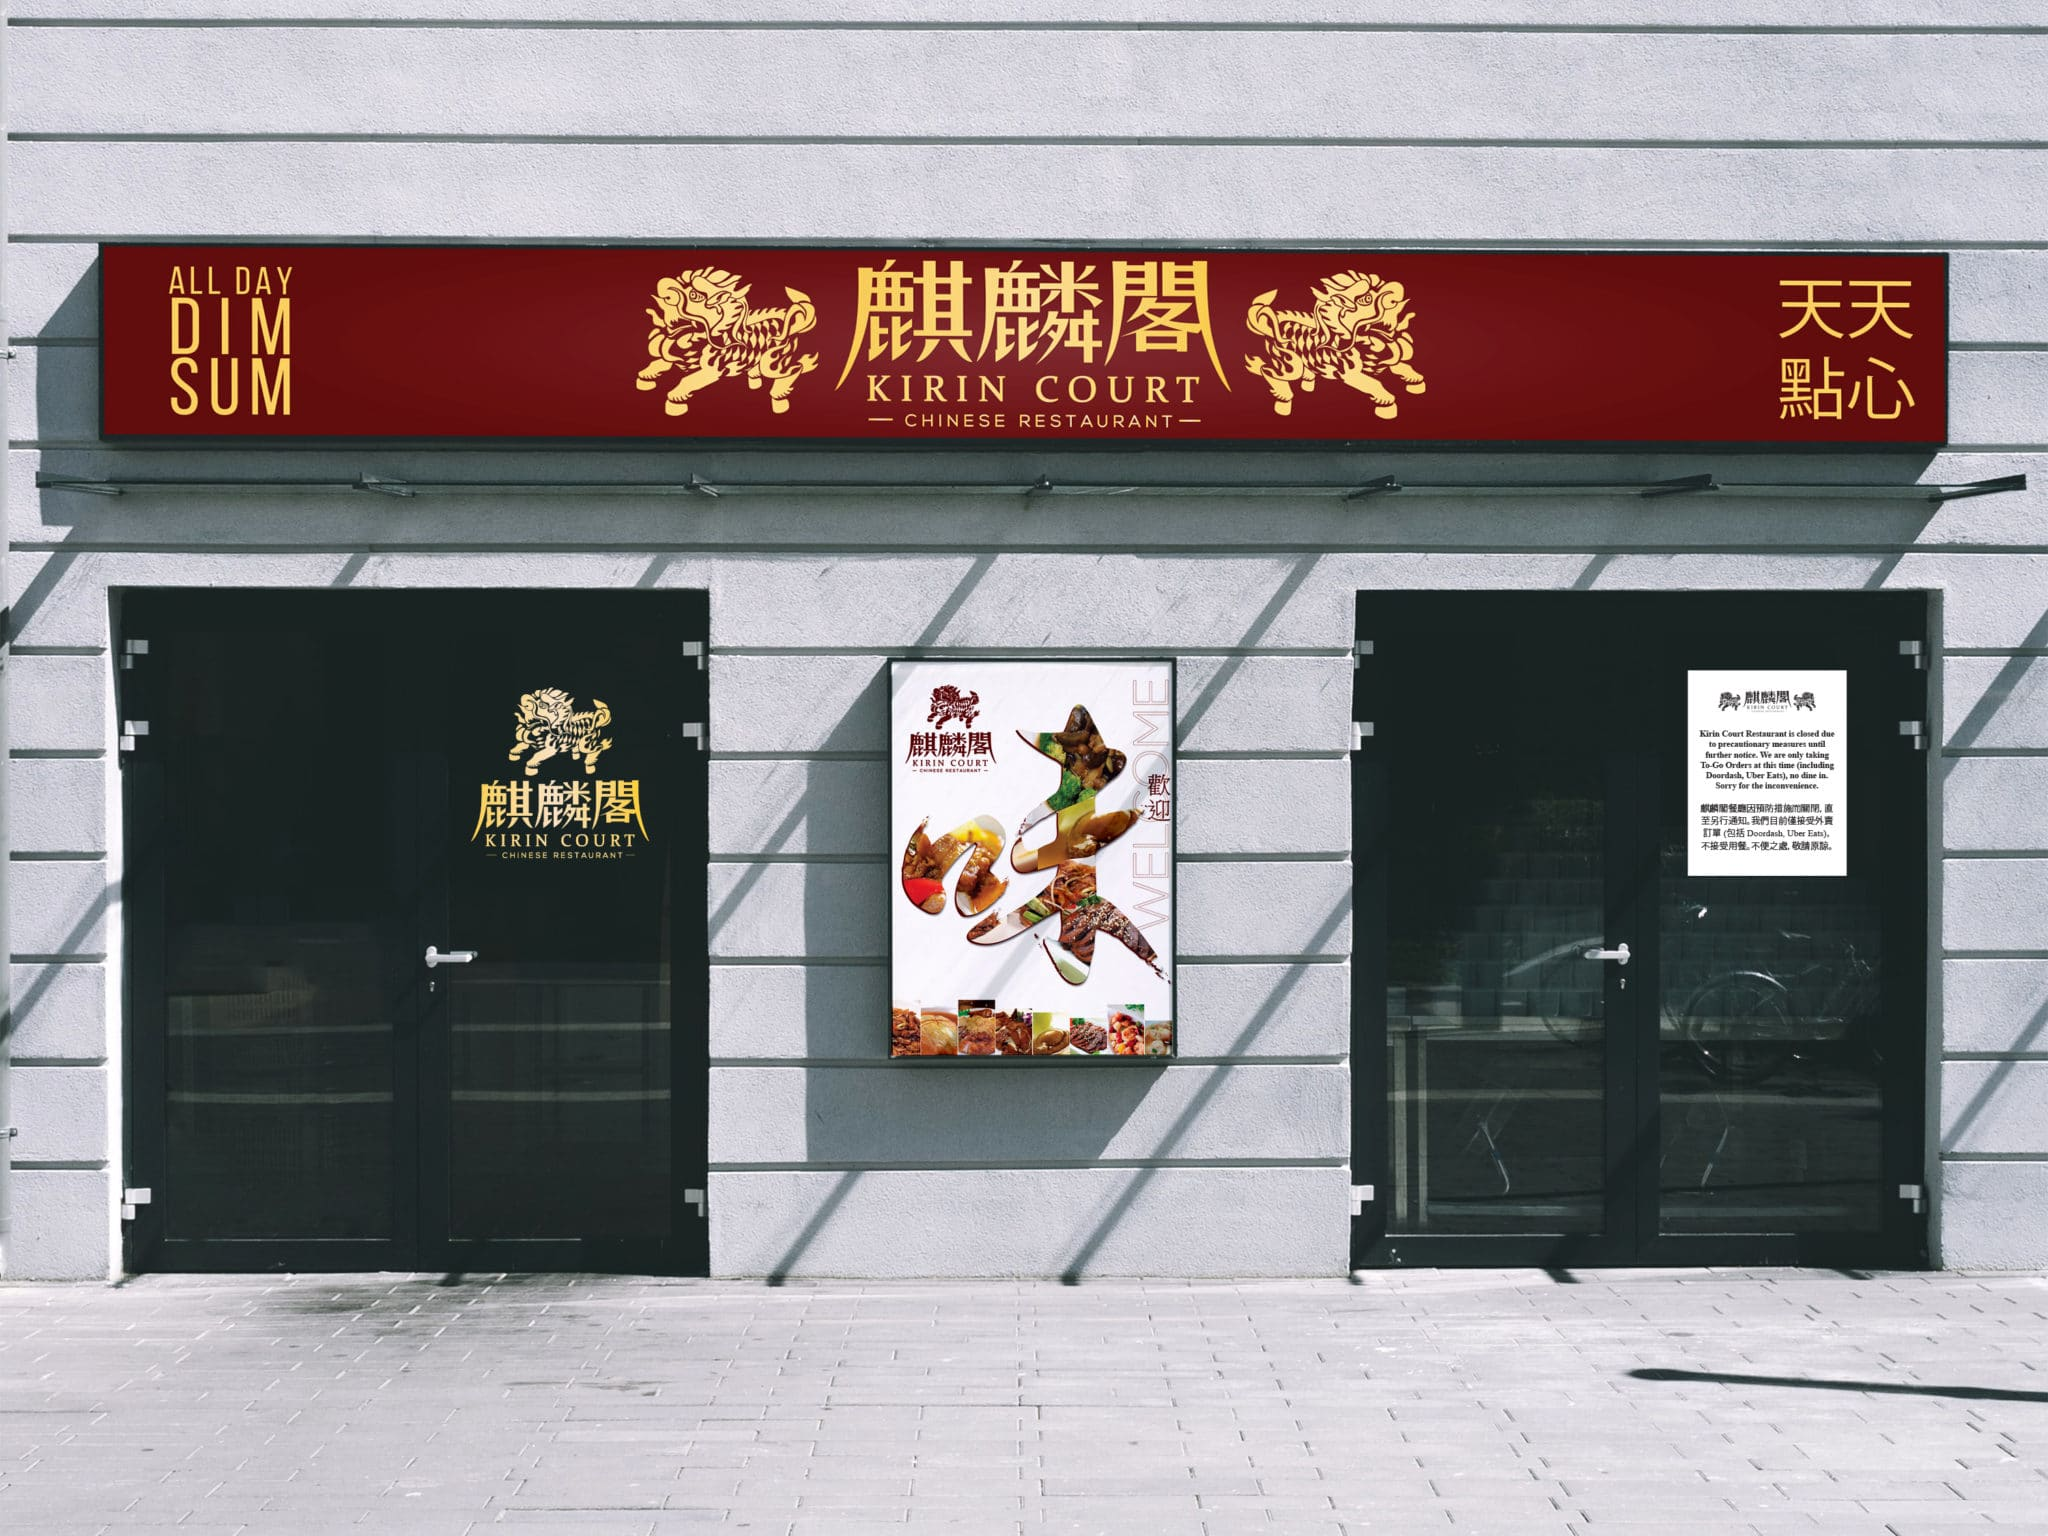 Exterior signage for Kirin Court Chinese Restaurant